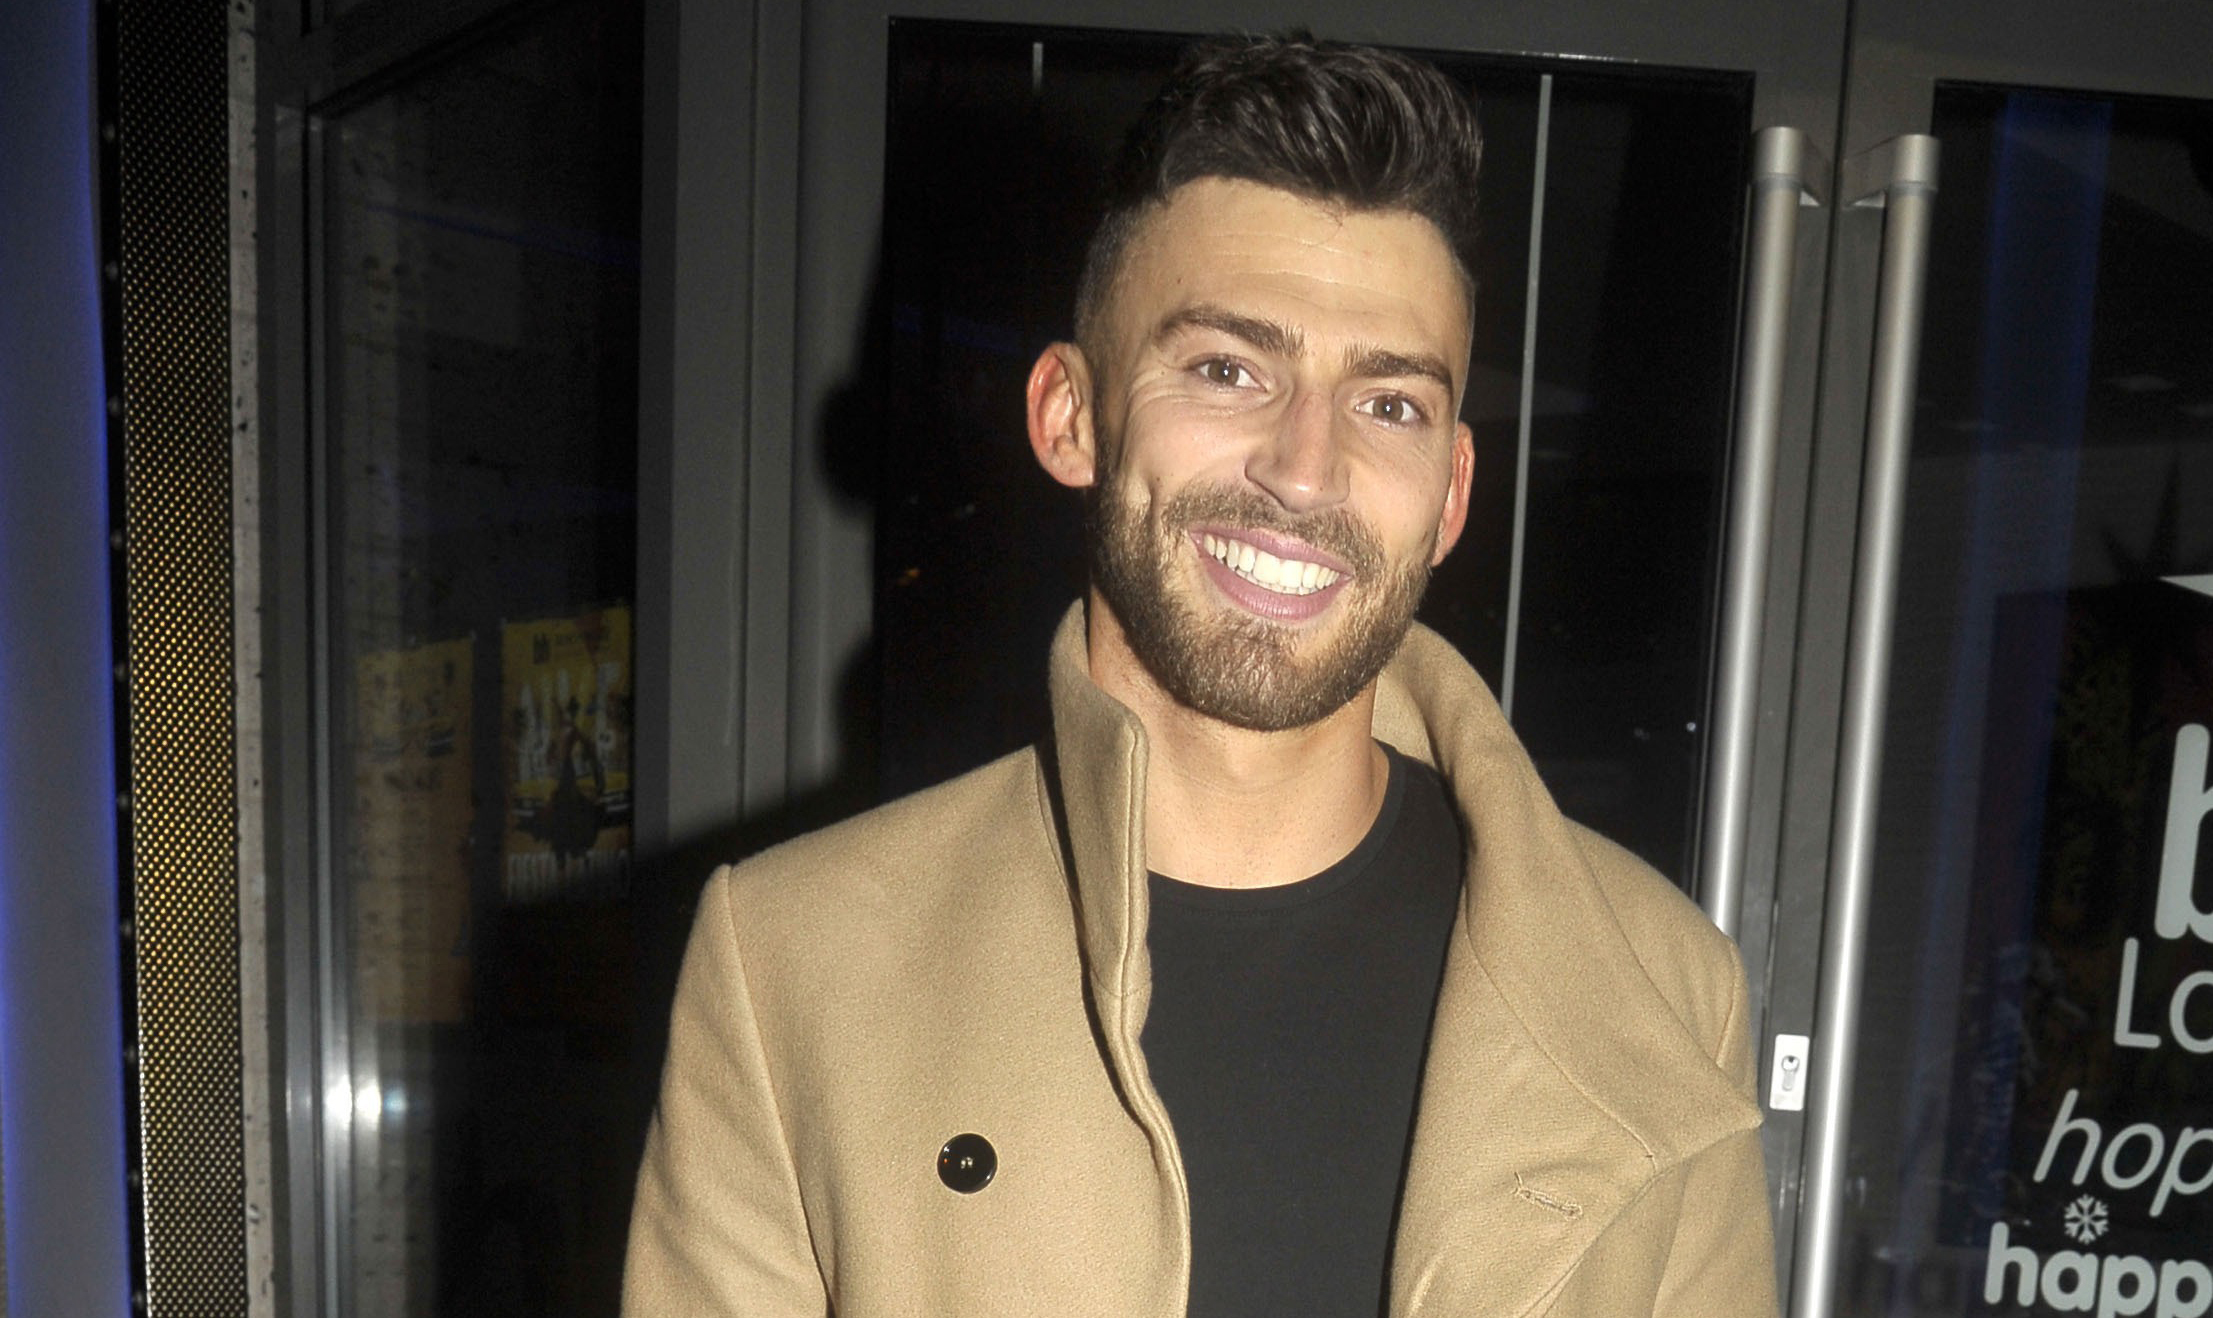 Dancing On Ice's Jake Quickenden was so busy he forgot to shower for three days